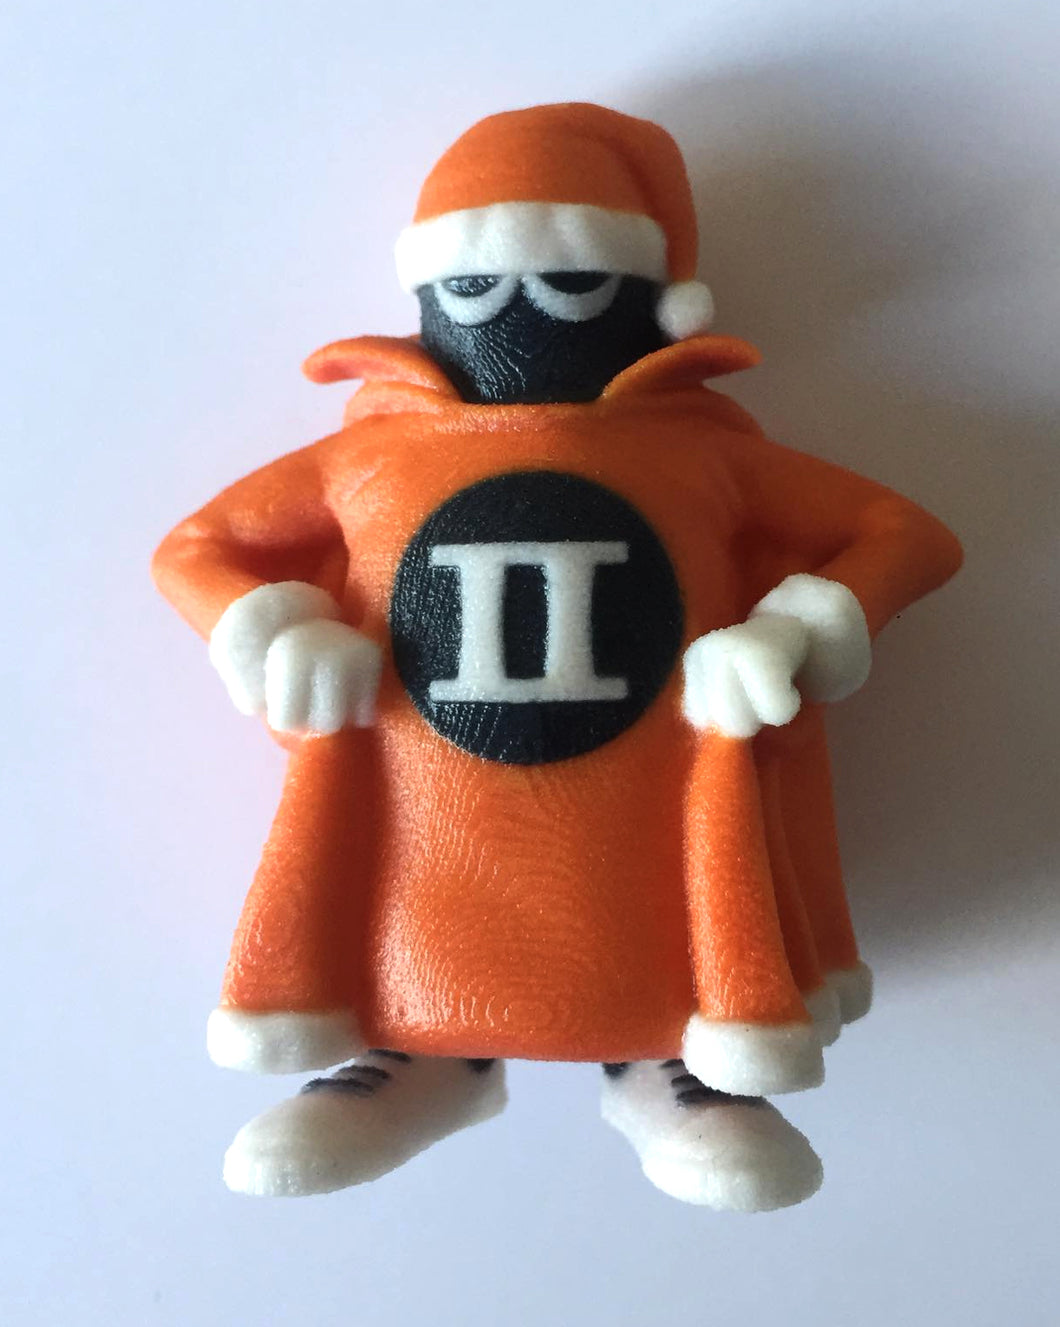 XMAS ORNAMENT SPOOK MASCOT 60mm 3D FULL COLOR SANDSTONE